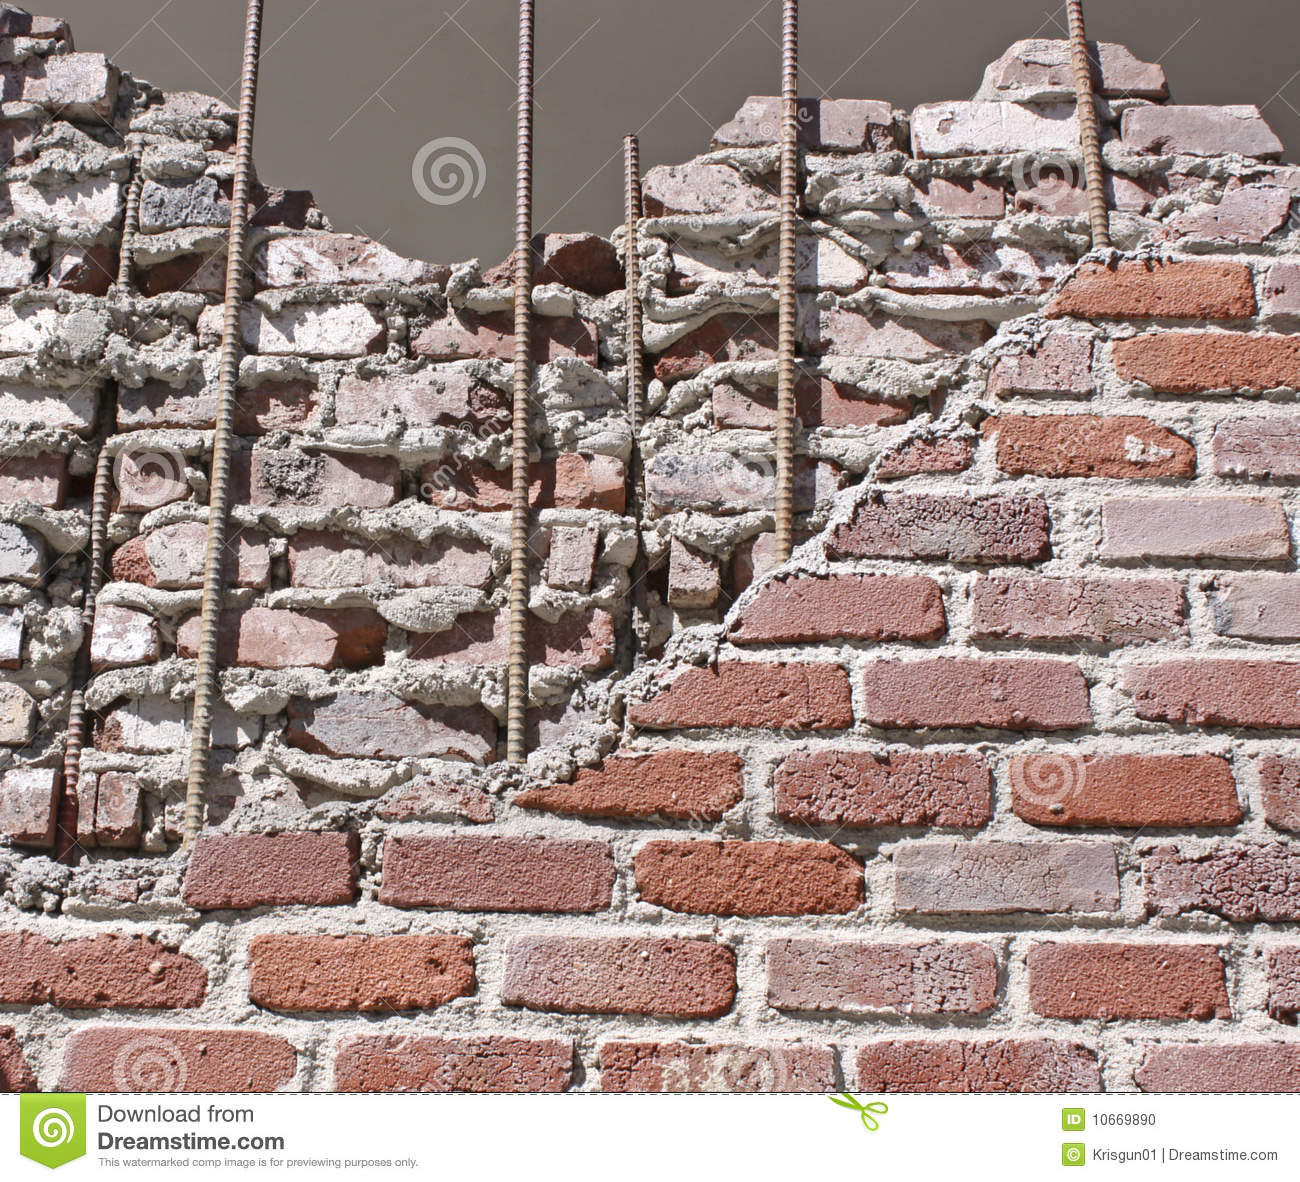 Chemicals In Walls Of Old Buildings United States